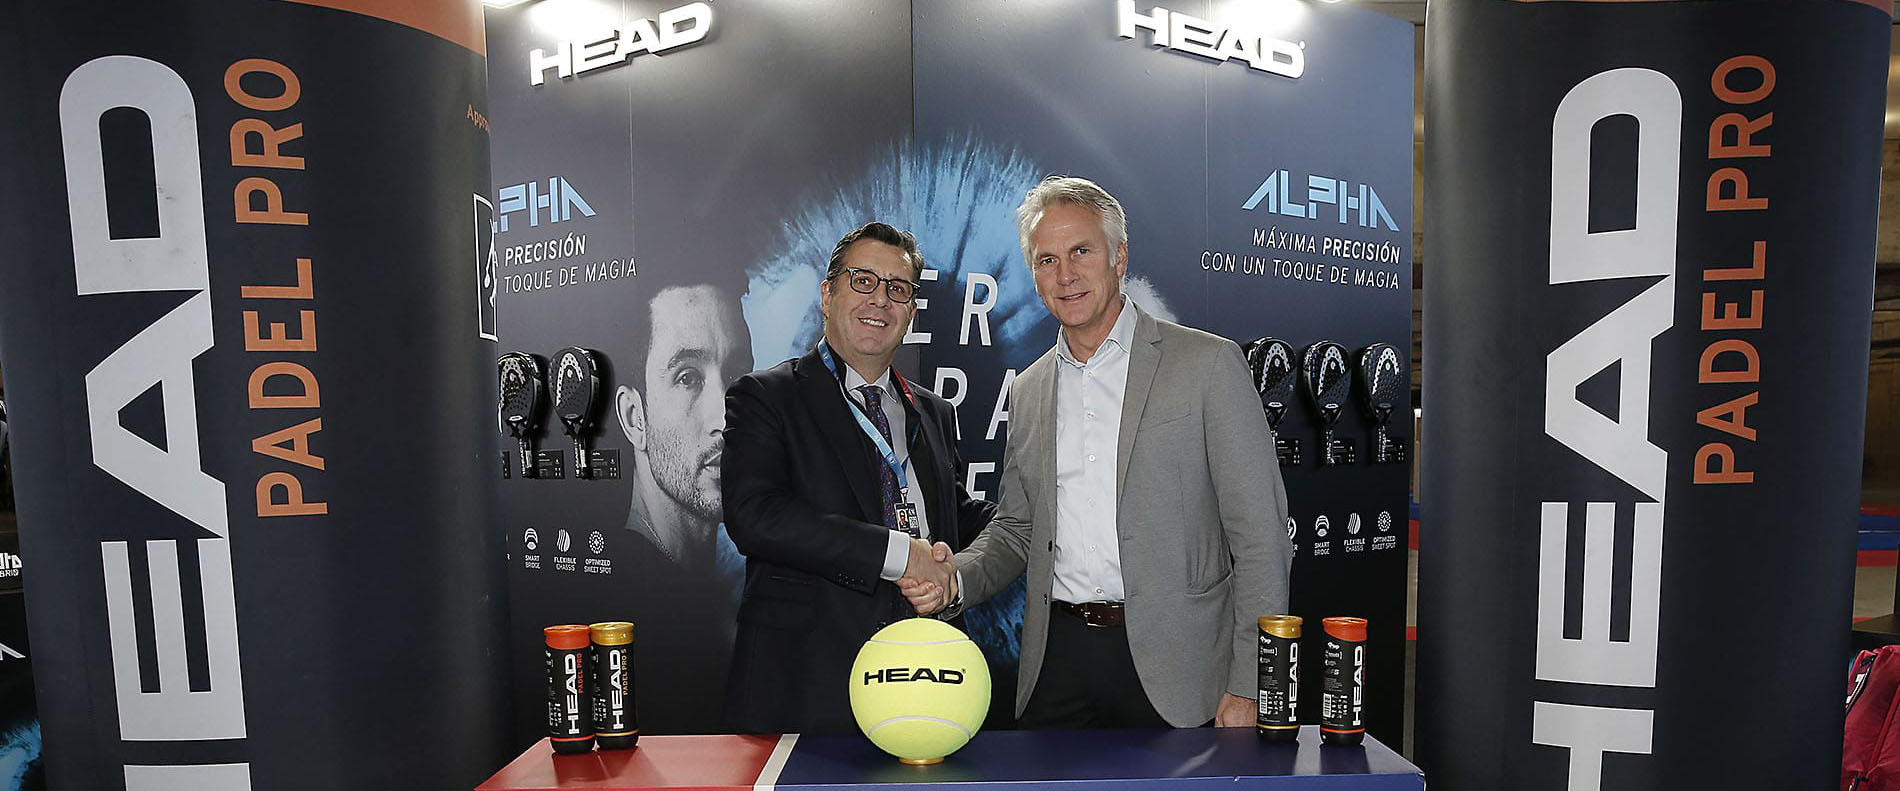 HEAD & WORLD PADEL TOUR STRENGTHEN THEIR ALLIANCE WITH THE HEAD PADEL PRO & HEAD PADEL PRO S PLAYING A STARRING ROLE